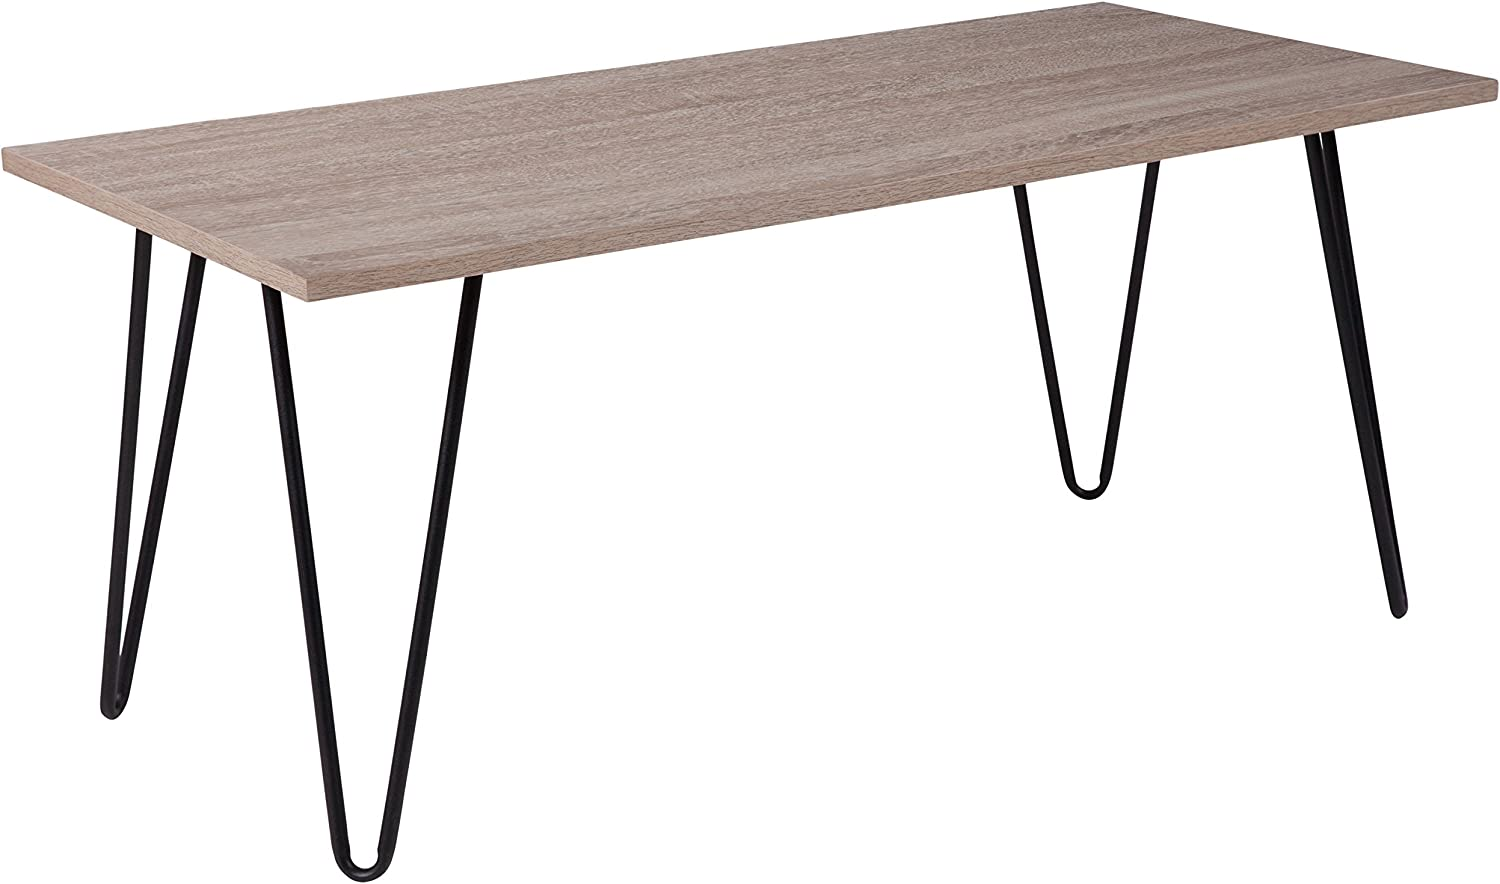 Flash Furniture Oak Park Collection Driftwood Wood Grain Finish Coffee Table with Black Metal Legs